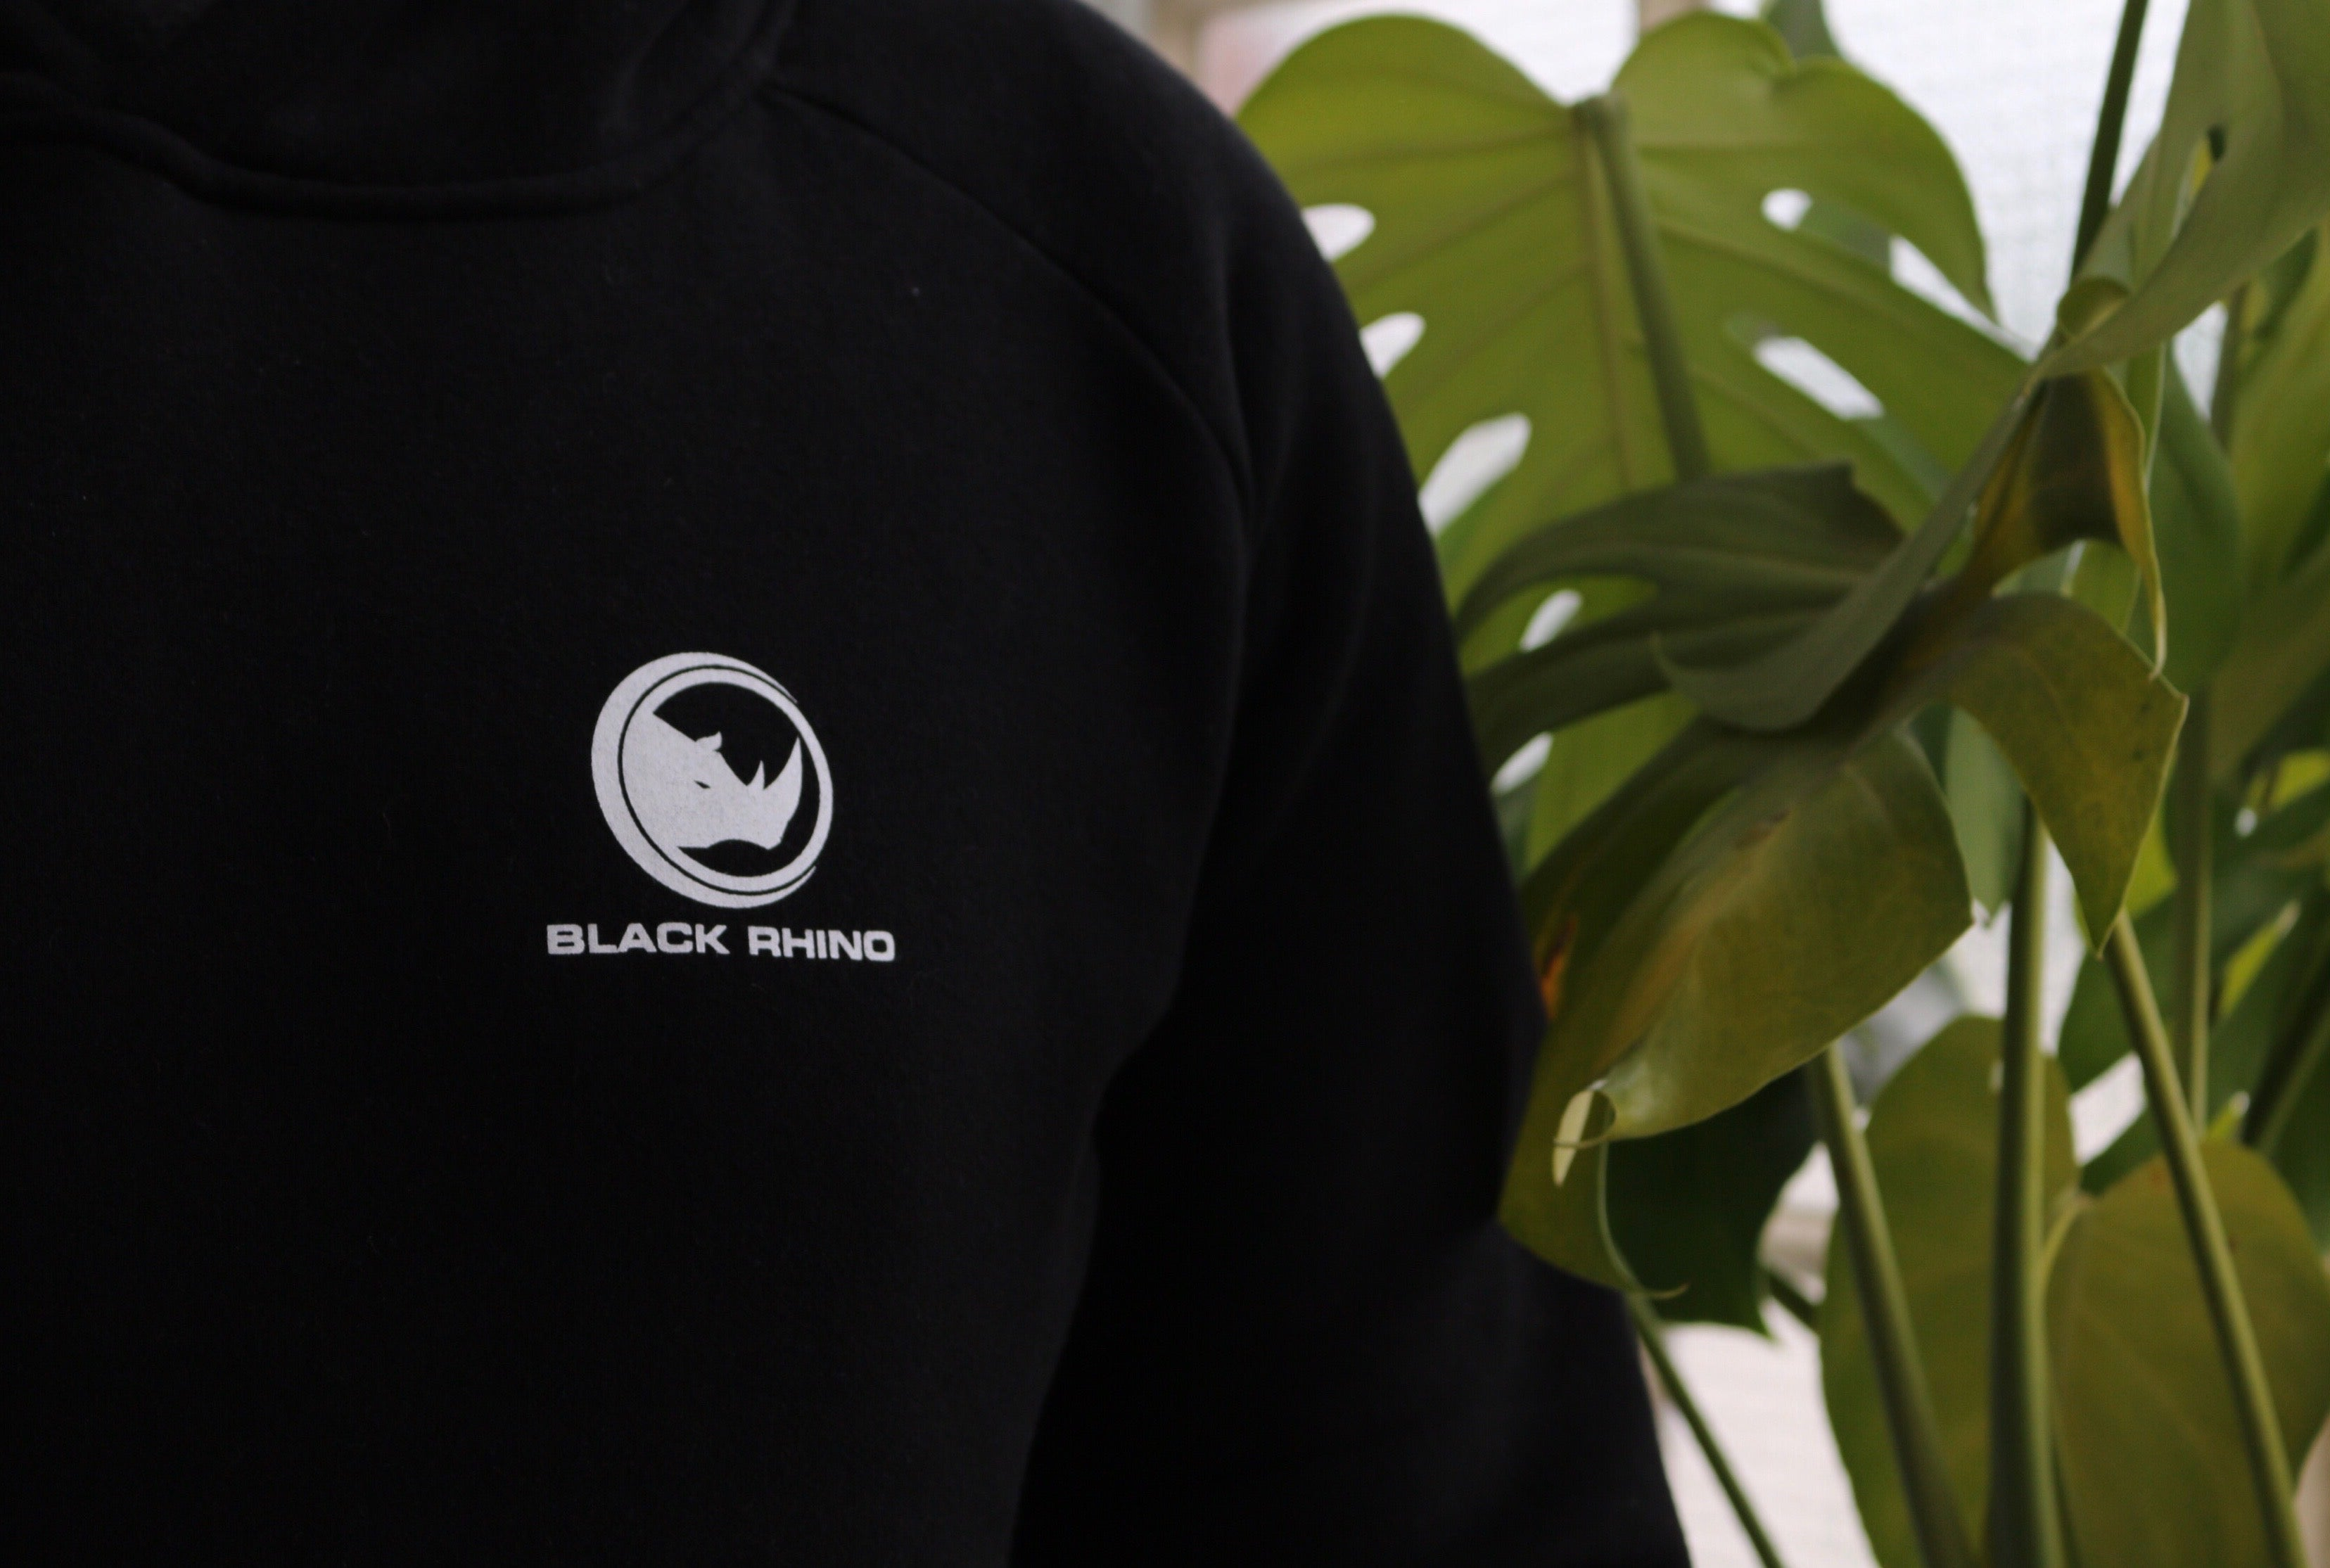 Black Rhino Gym Wear - Black Rhino Gym Wear